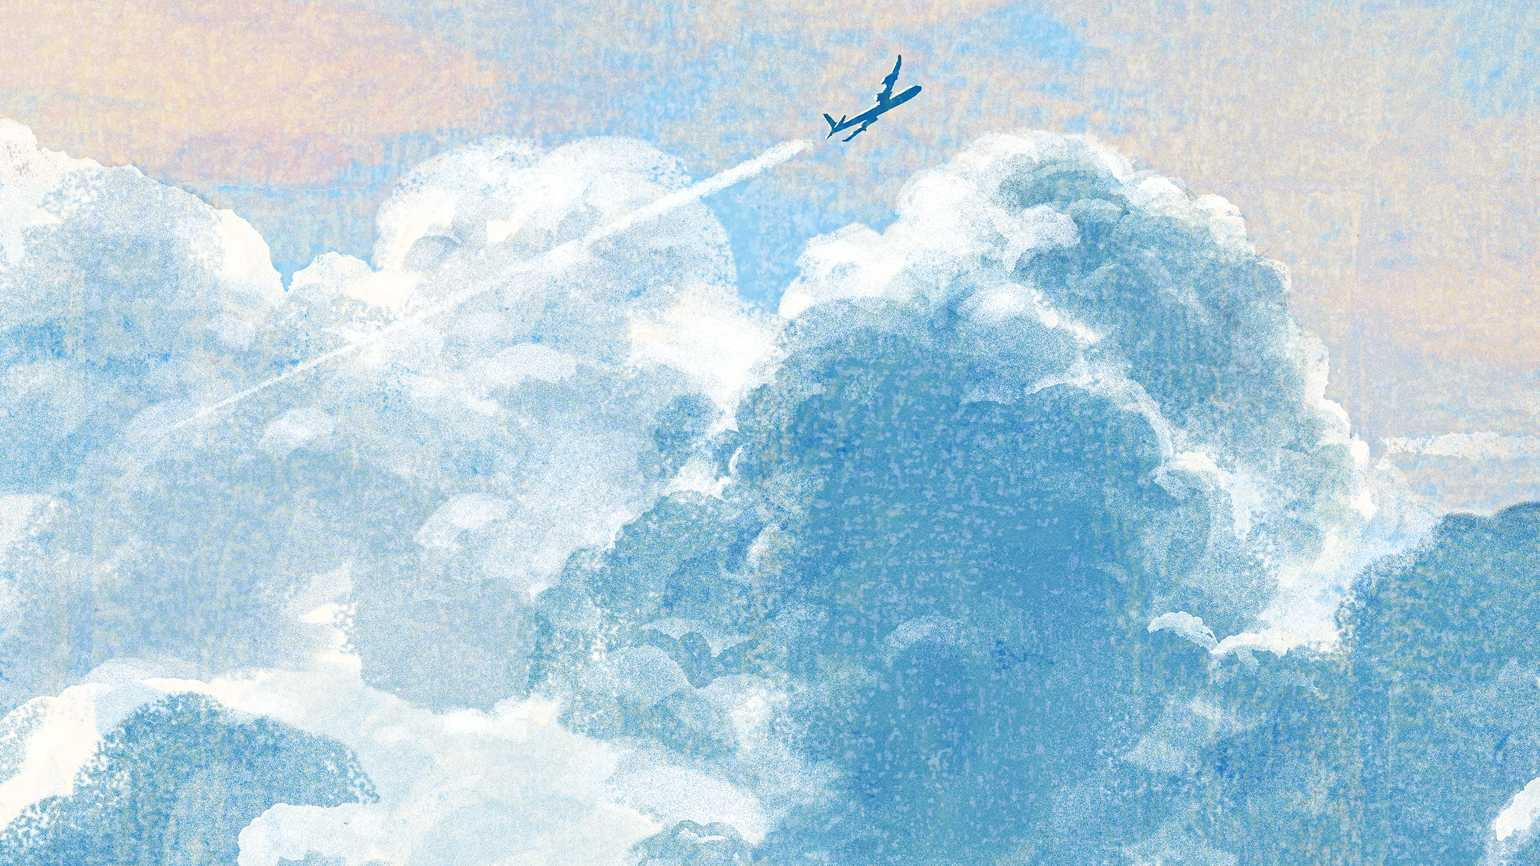 An illustration of a single airplane flying through the clouds; Illustration by Tatsuro Kiuchi